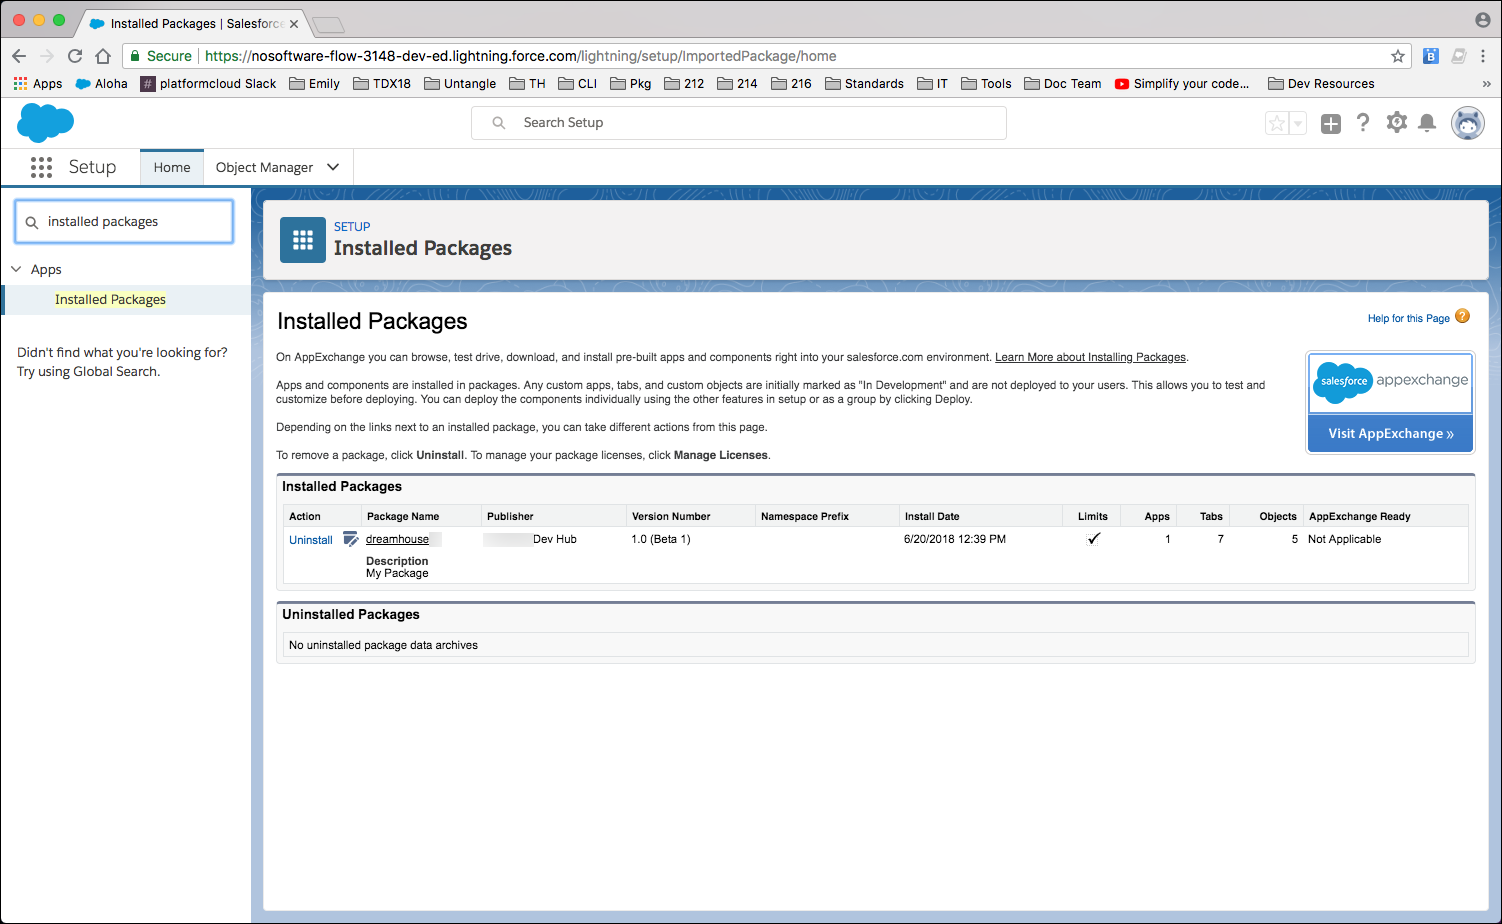 "Shows the Installed Packages dialog with ""dreamhouse"" listed under Installed Packages. You can also see the Dev Hub name, package version, and installation date and time."